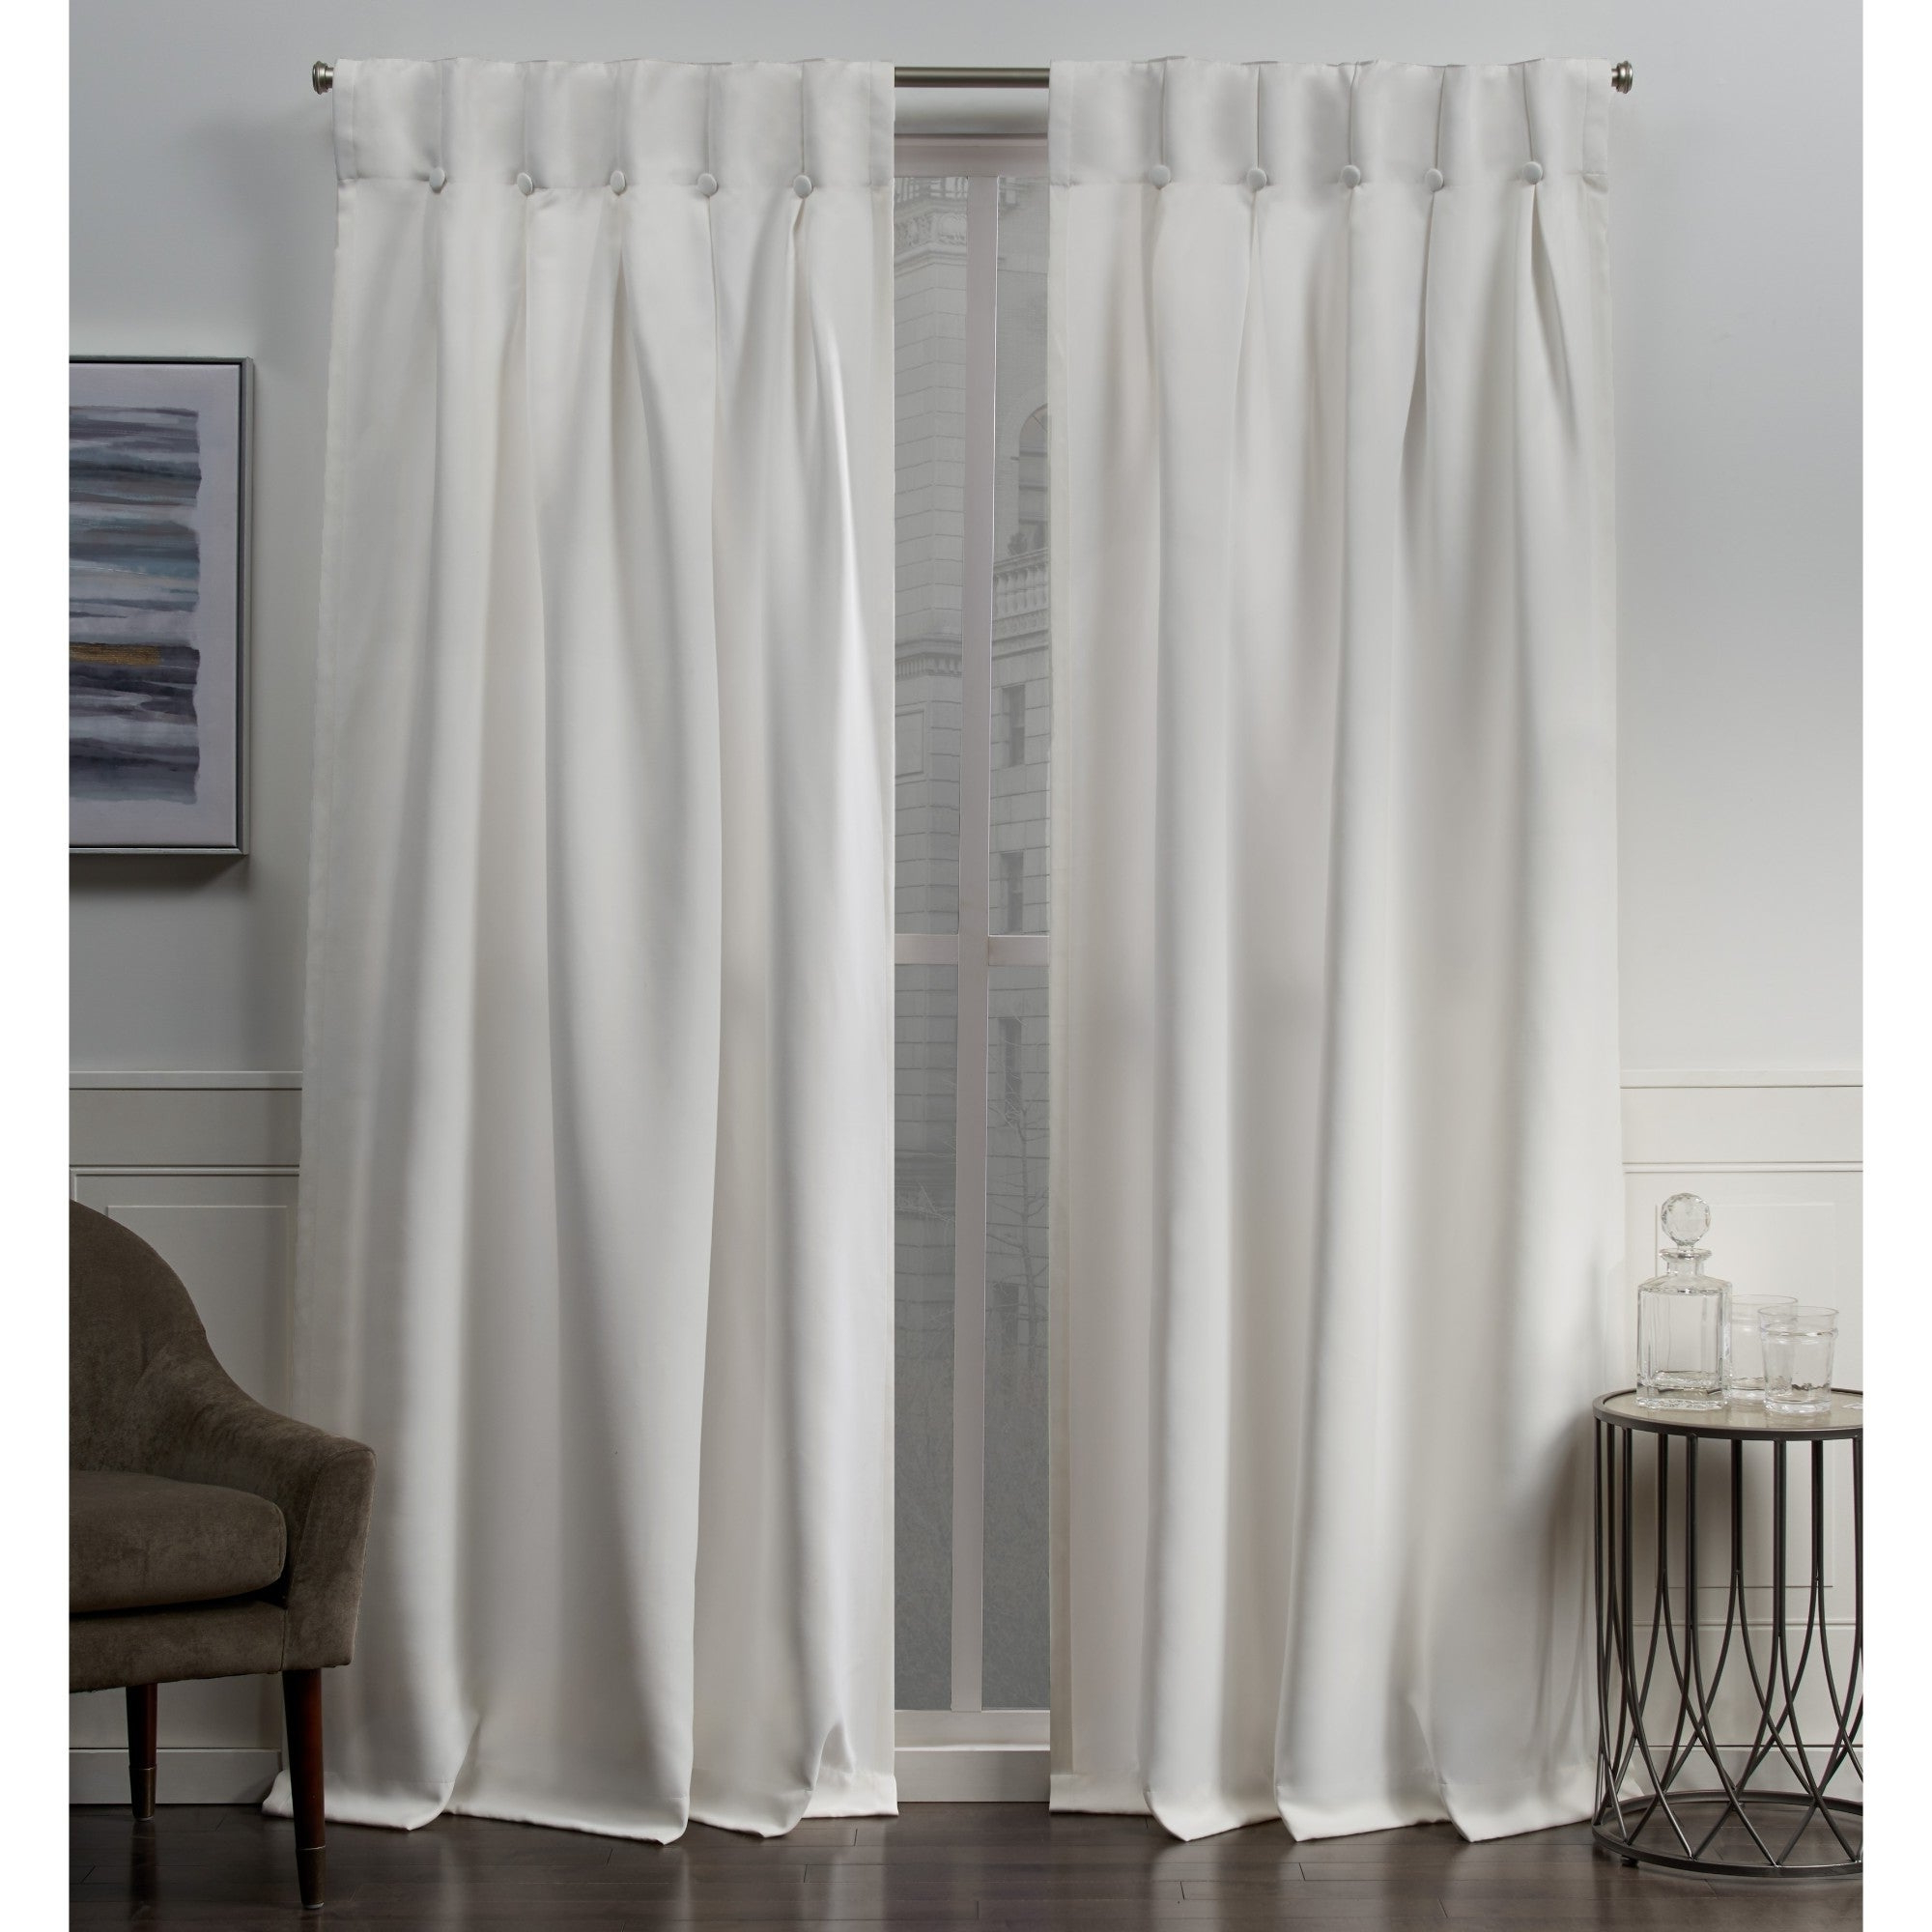 Newest Sateen Woven Blackout Curtain Panel Pairs With Pinch Pleat Top With Regard To Ati Home Sateen Woven Blackout Button Top Window Curtain Panel Pair (View 13 of 20)